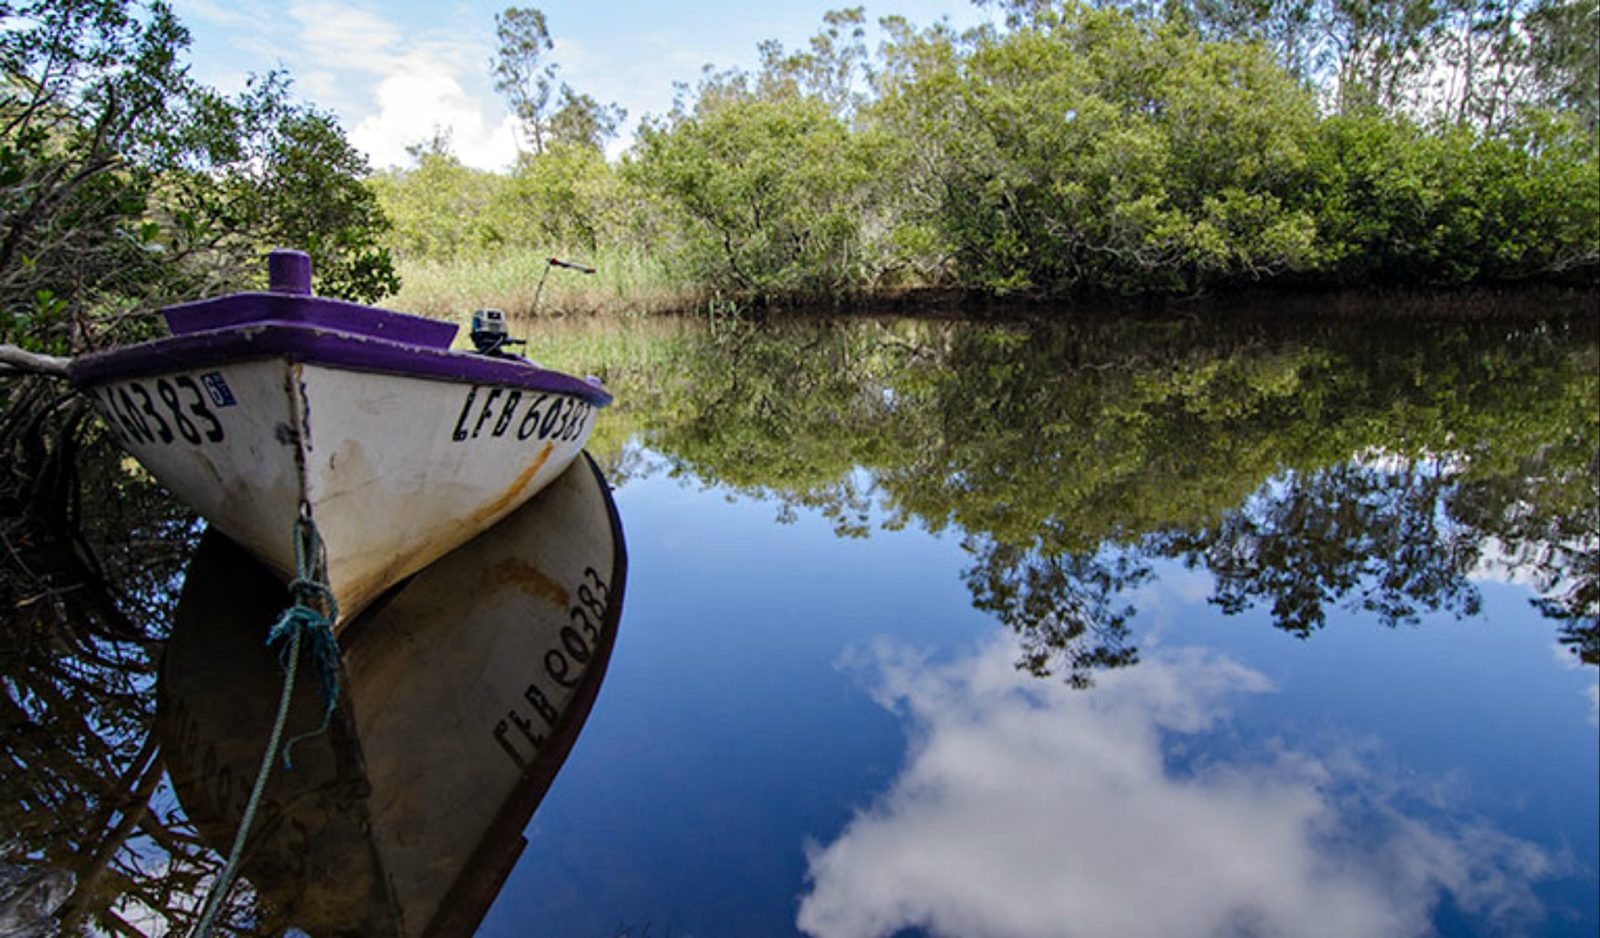 Pipers Creek picnic area, Myall Lakes National Park. Photo: John Spencer/NSW Government